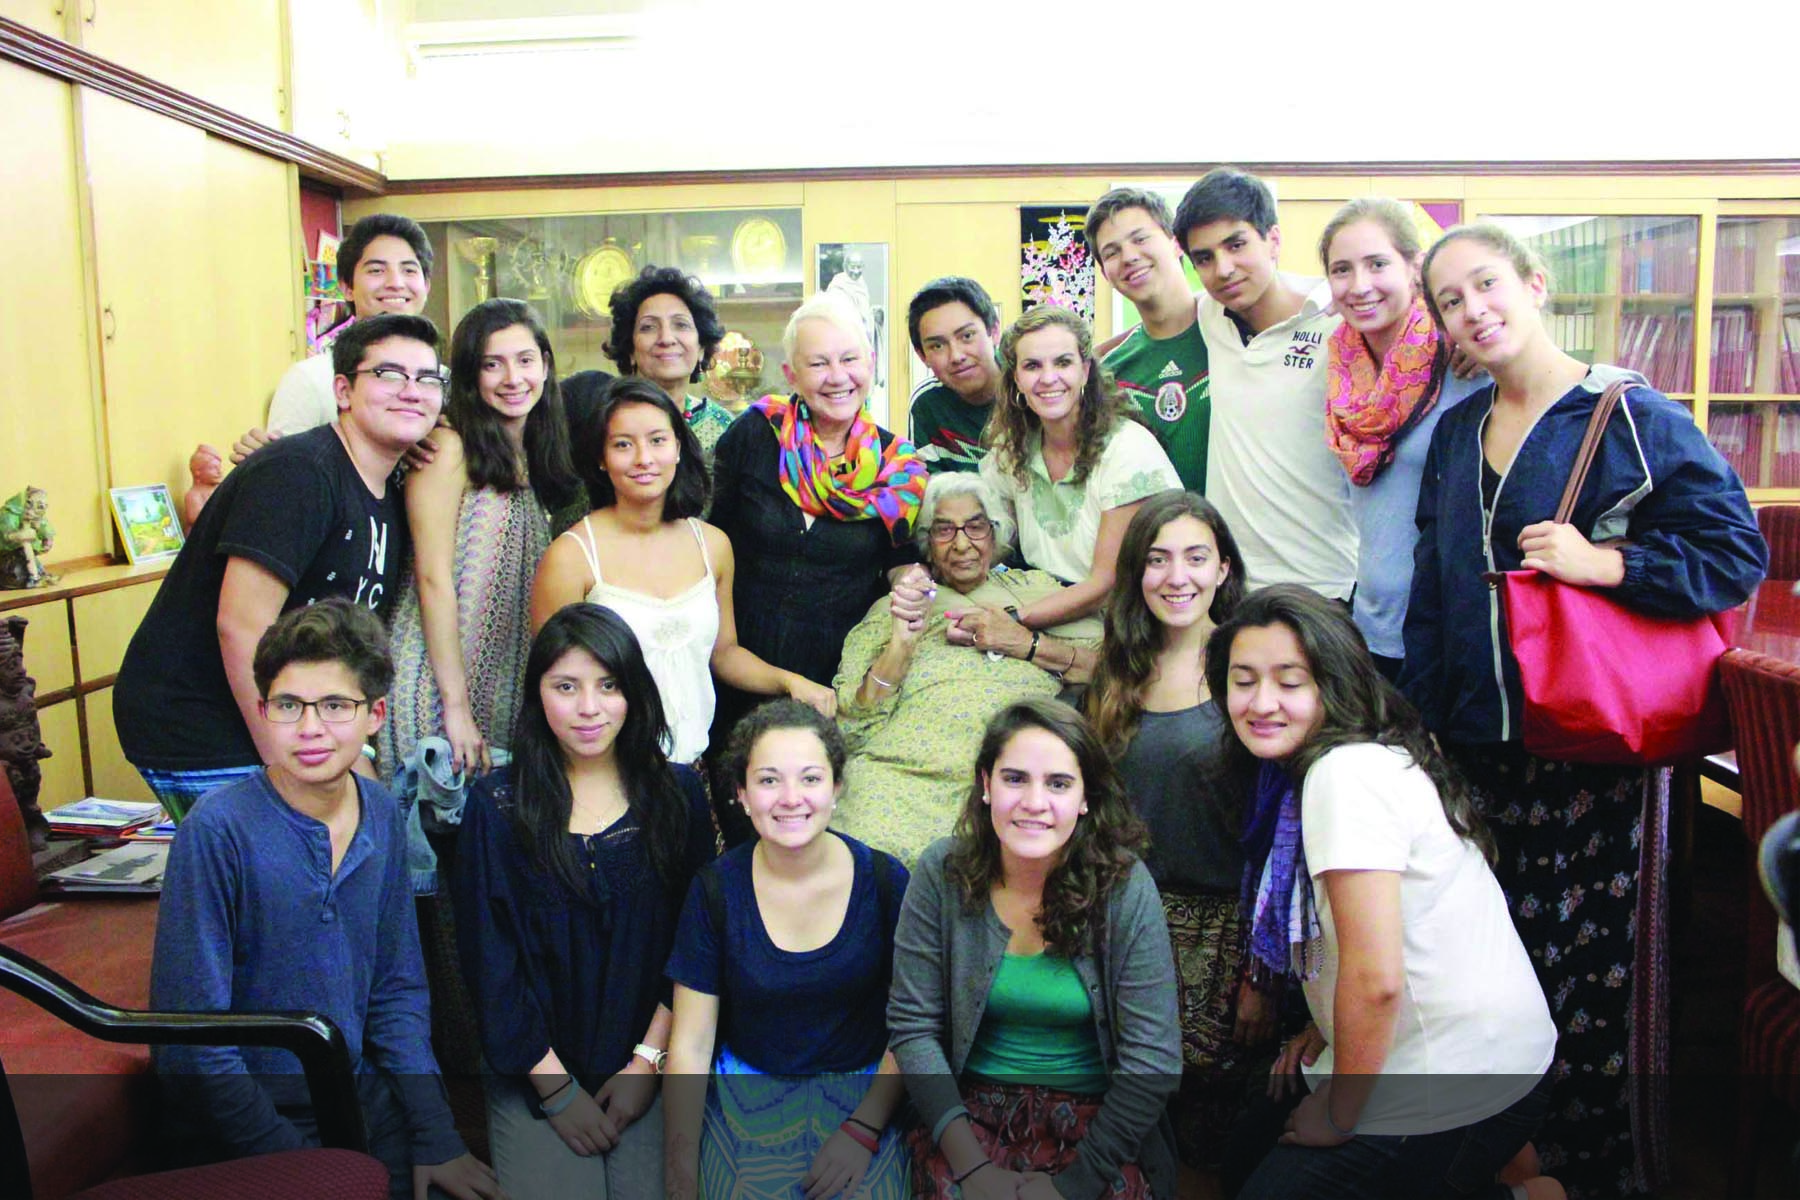 The East meets West - Olinca School, Mexico with Founder Principal, Ma'am Soni